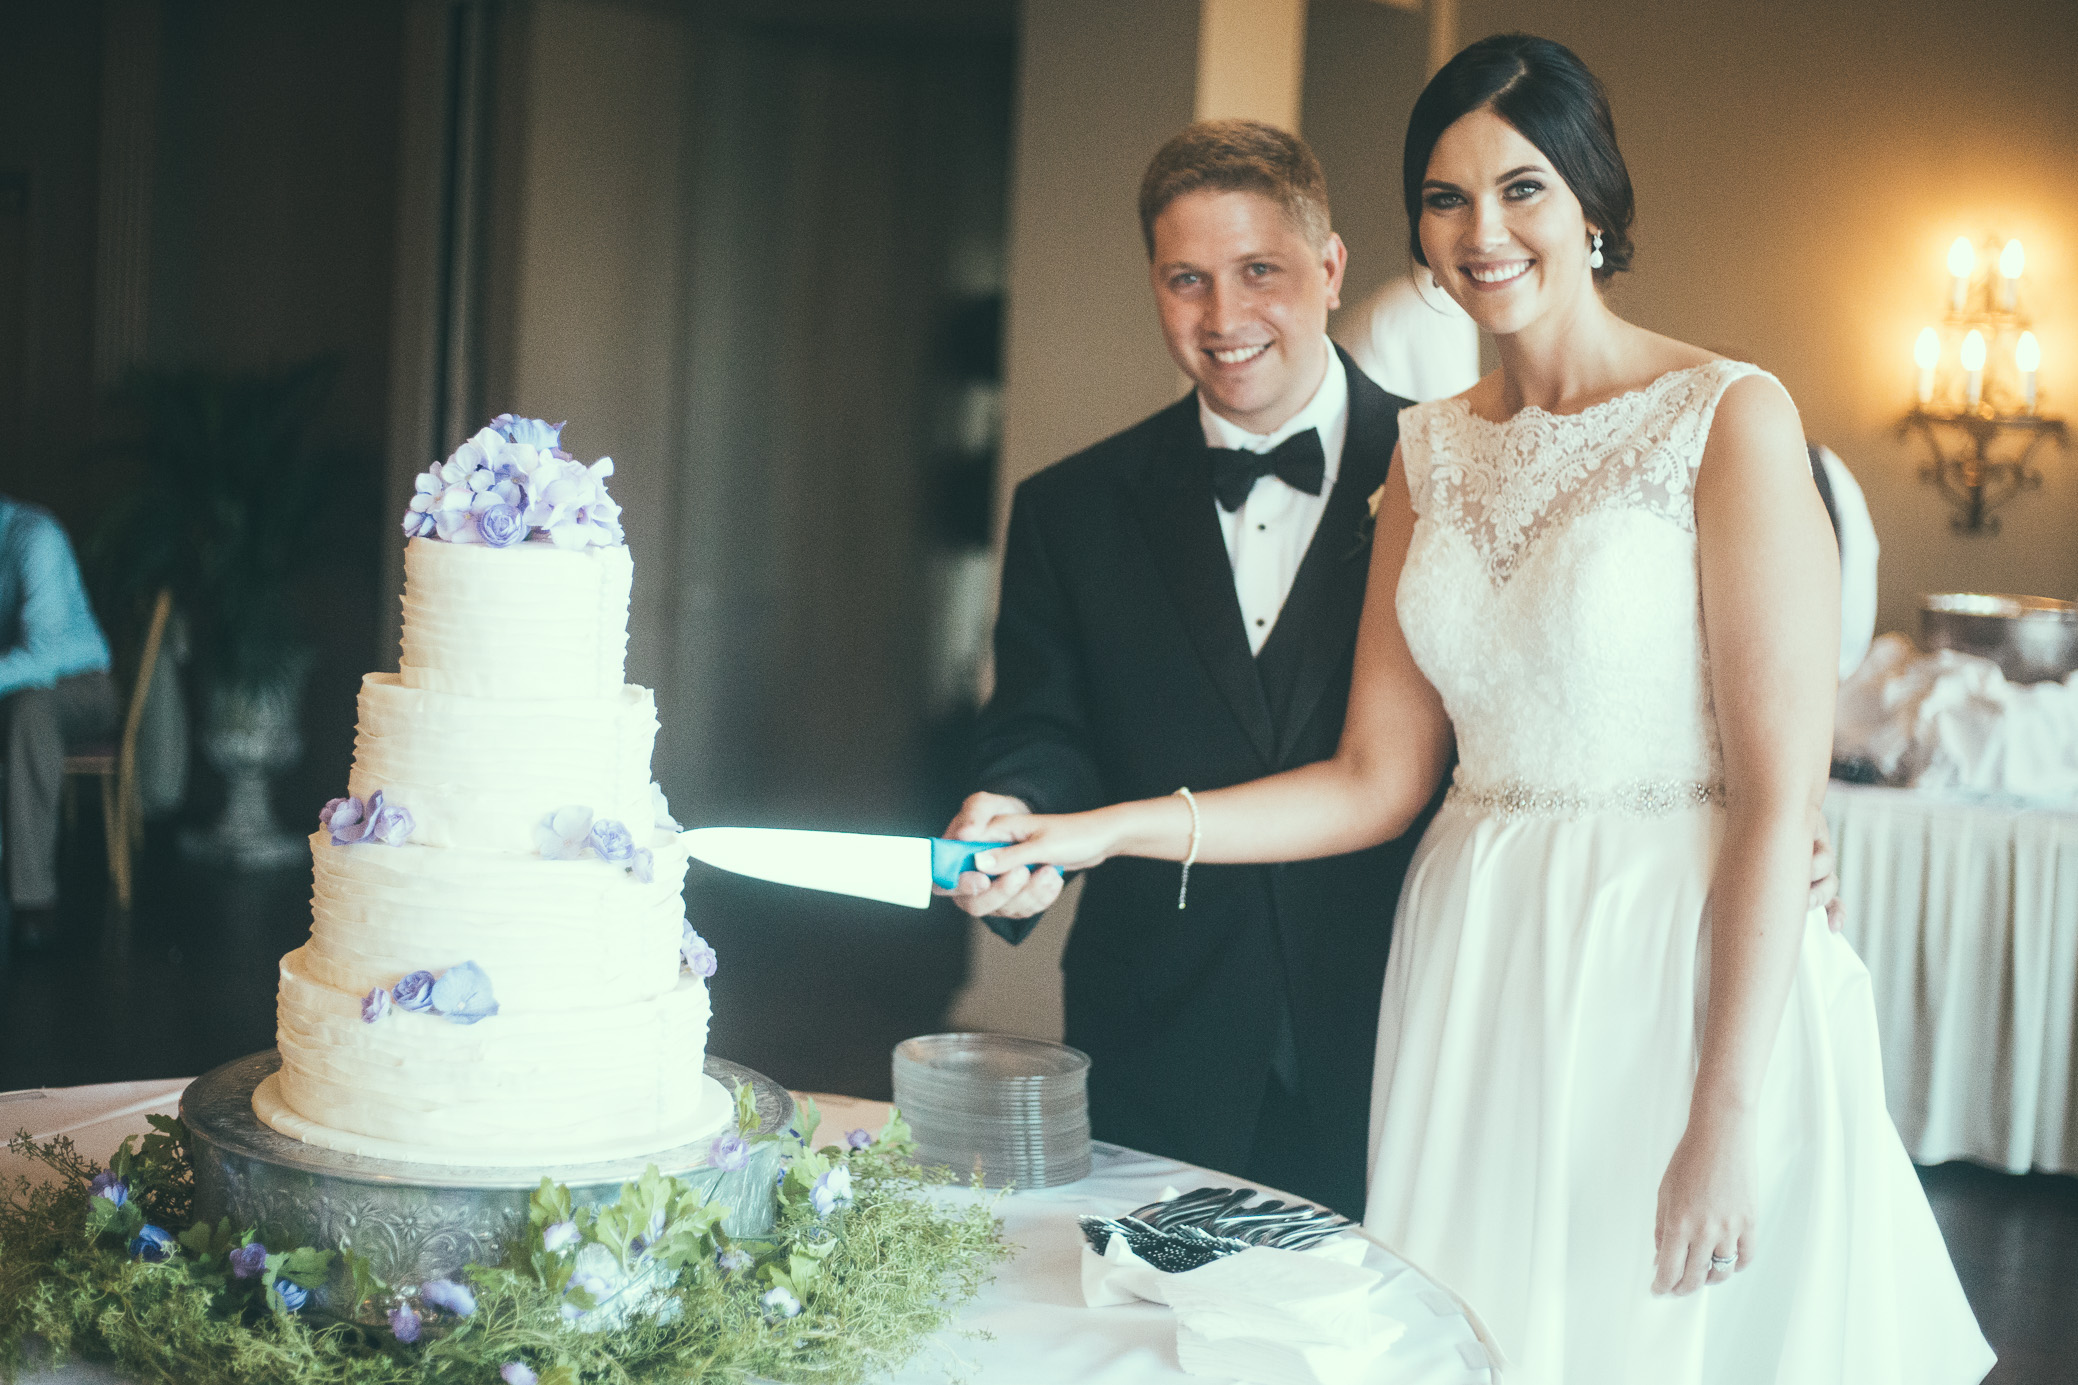 Gadsden Country Club wedding photography in Gadsden, Alabama by David A. Smith of DSmithImages Wedding Photography, Portraits, and Events in Birmingham, Alabama